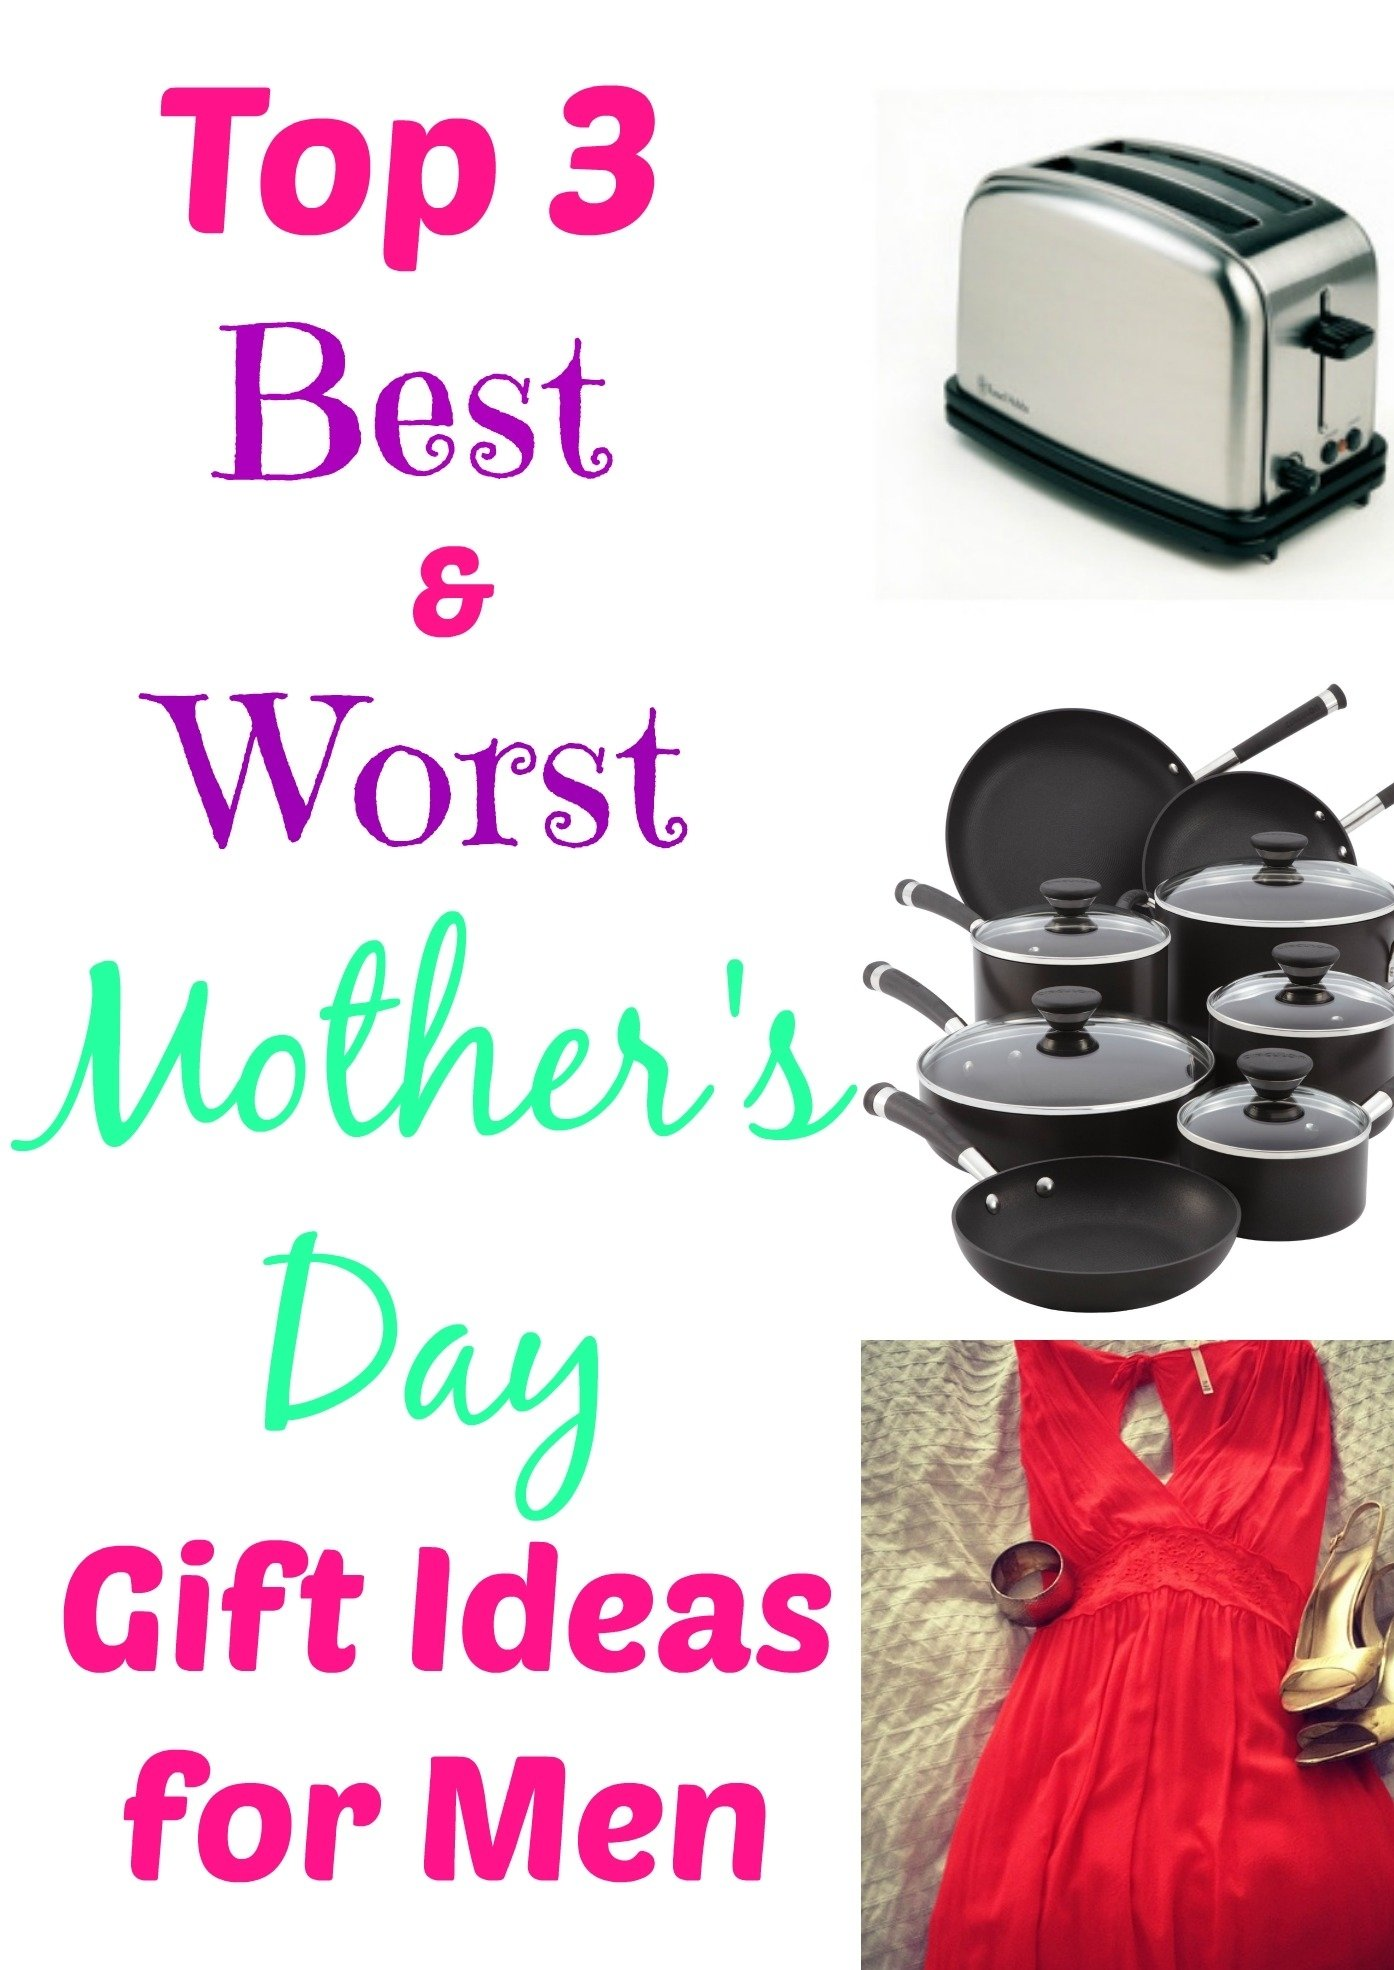 top 3 best & worst mother's day gift ideas for men